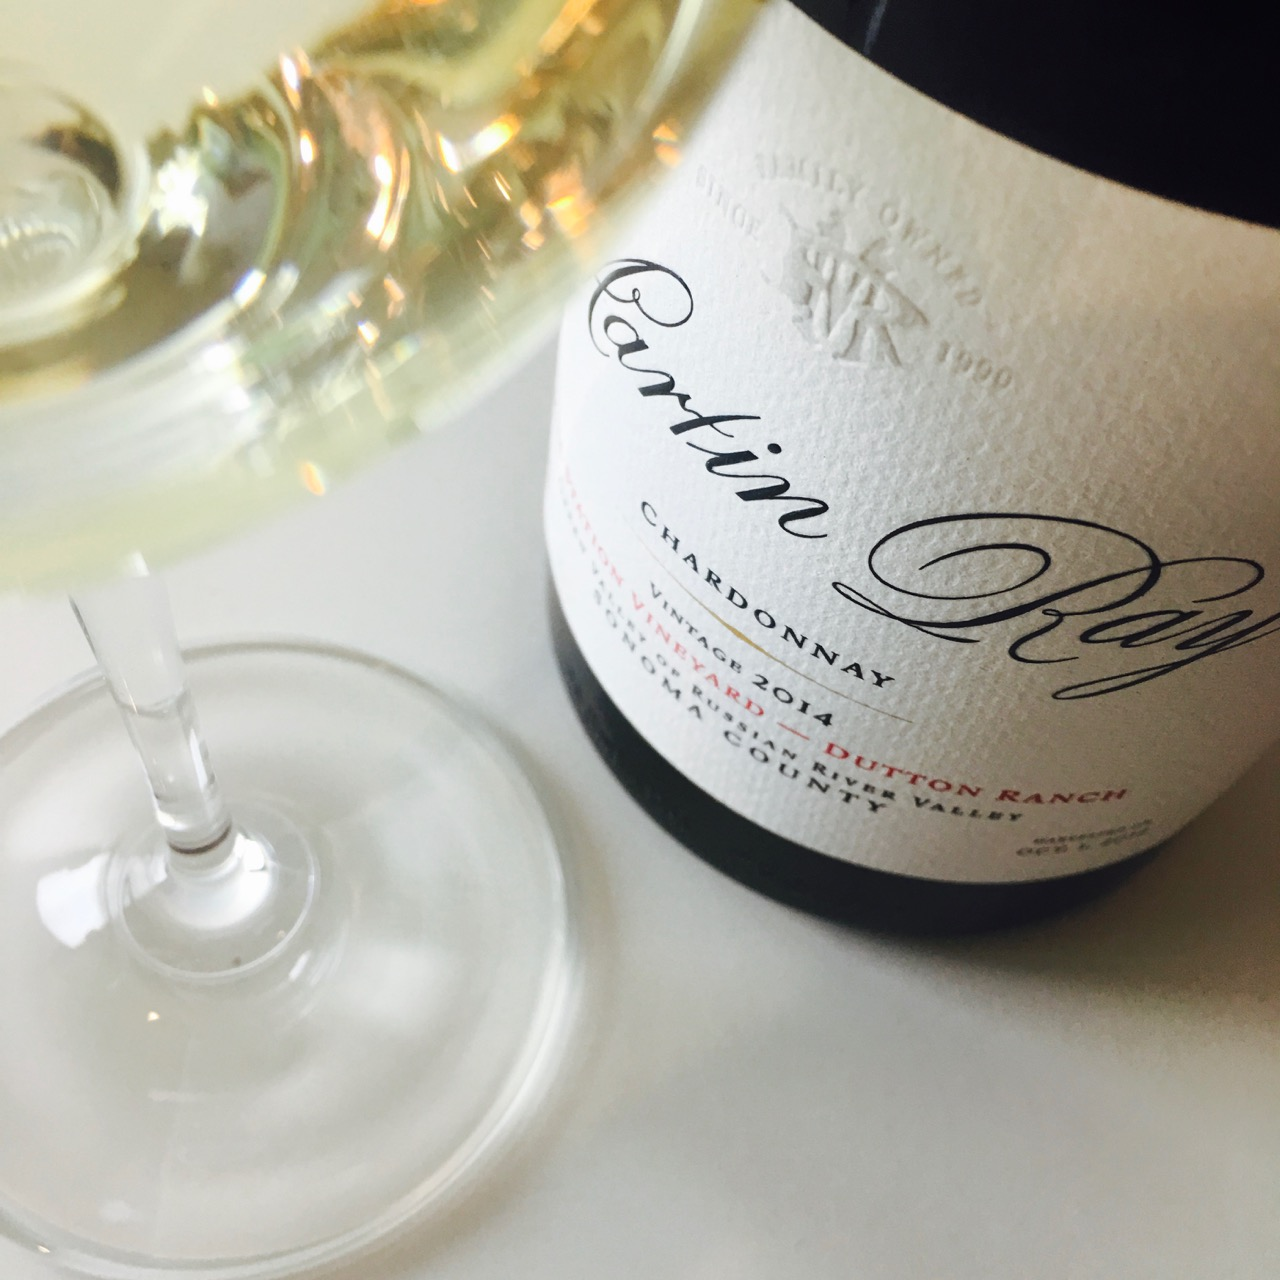 2014 Martin Ray Winery Chardonnay Mill Station Vineyard Dutton Ranch, Green Valley of Russian River Valley, Sonoma County